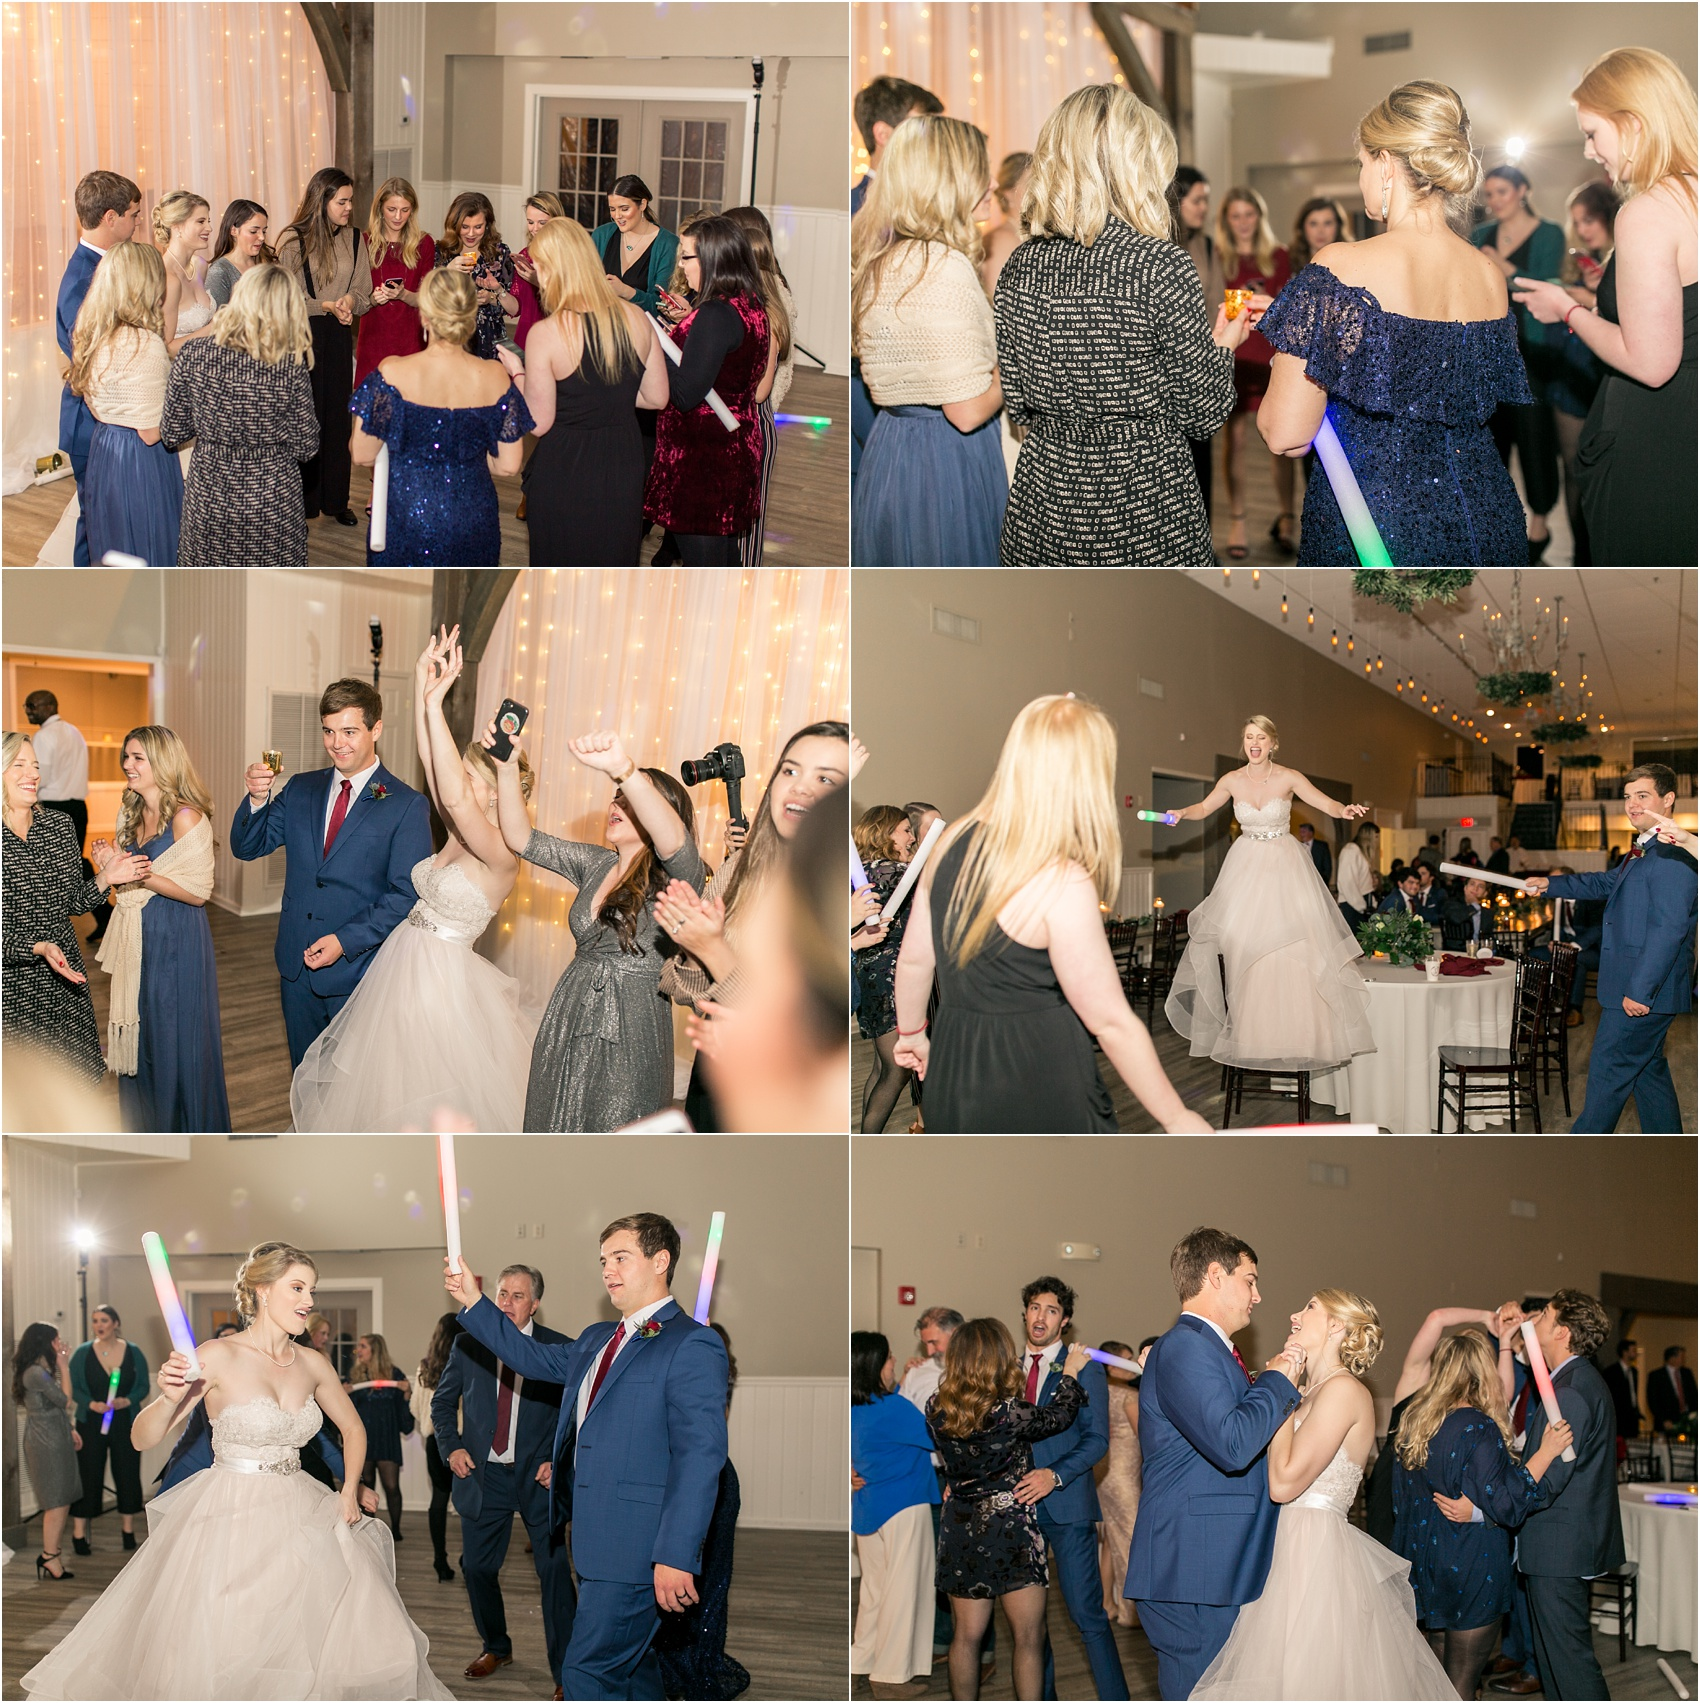 Savannah Eve Photography- Brandon-Brown Wedding-125.jpg